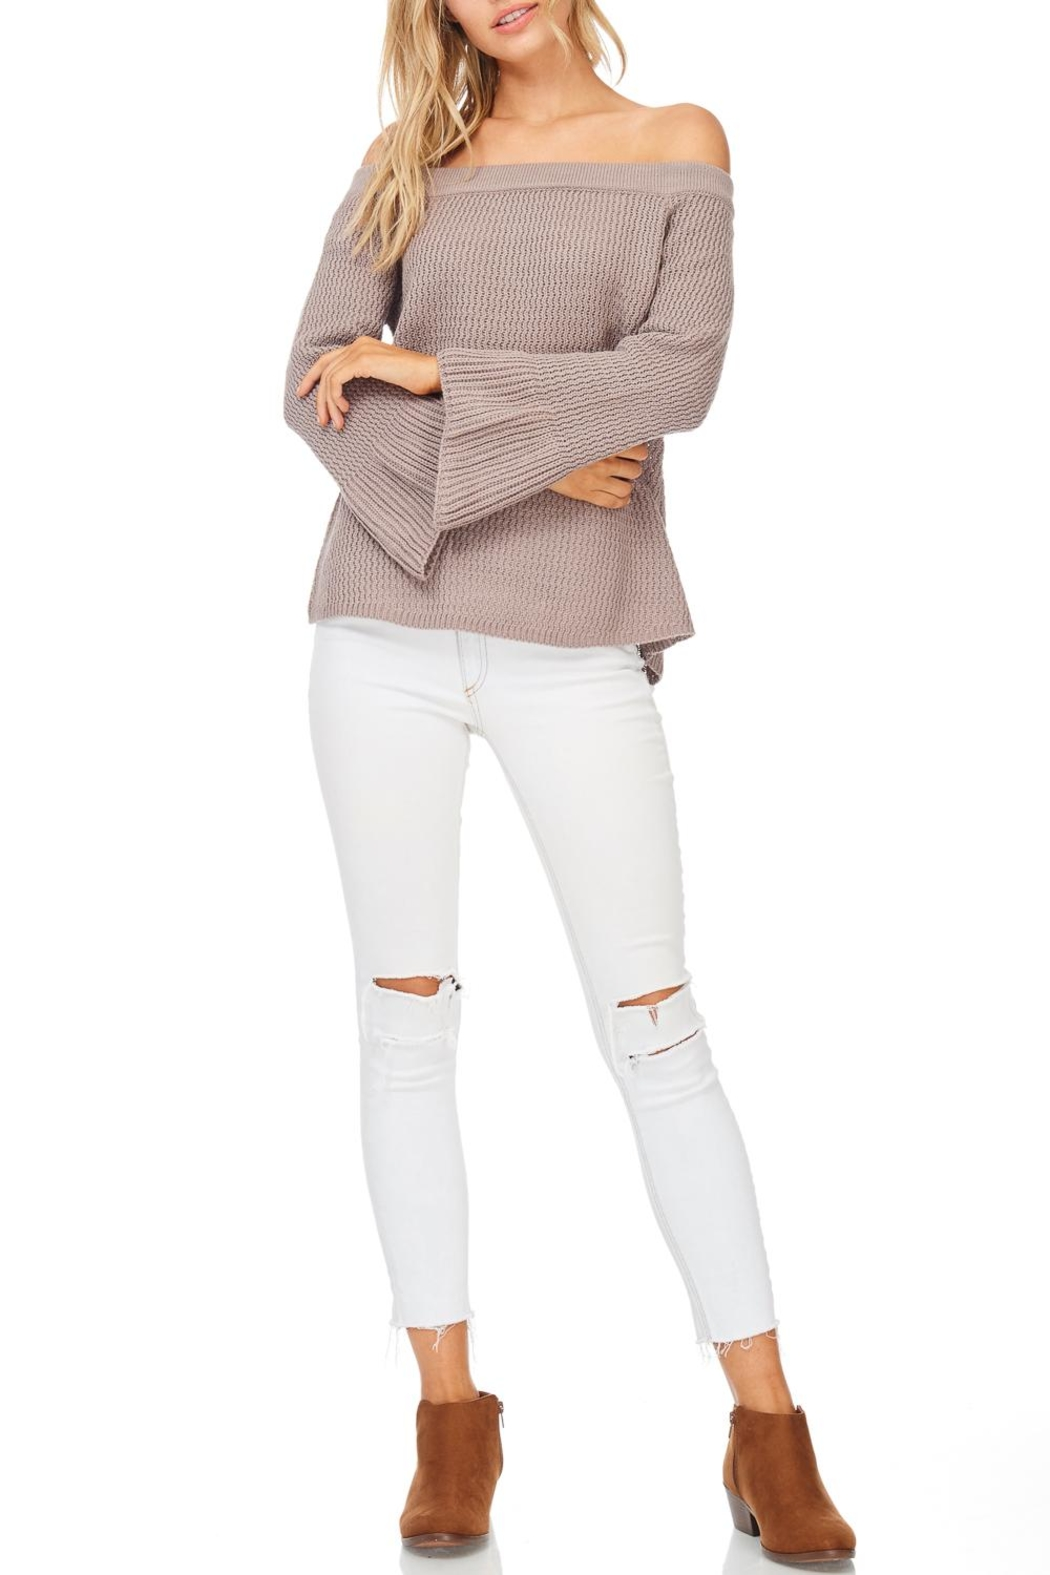 LoveRiche Solid Off The Shoulder Sweater - Main Image